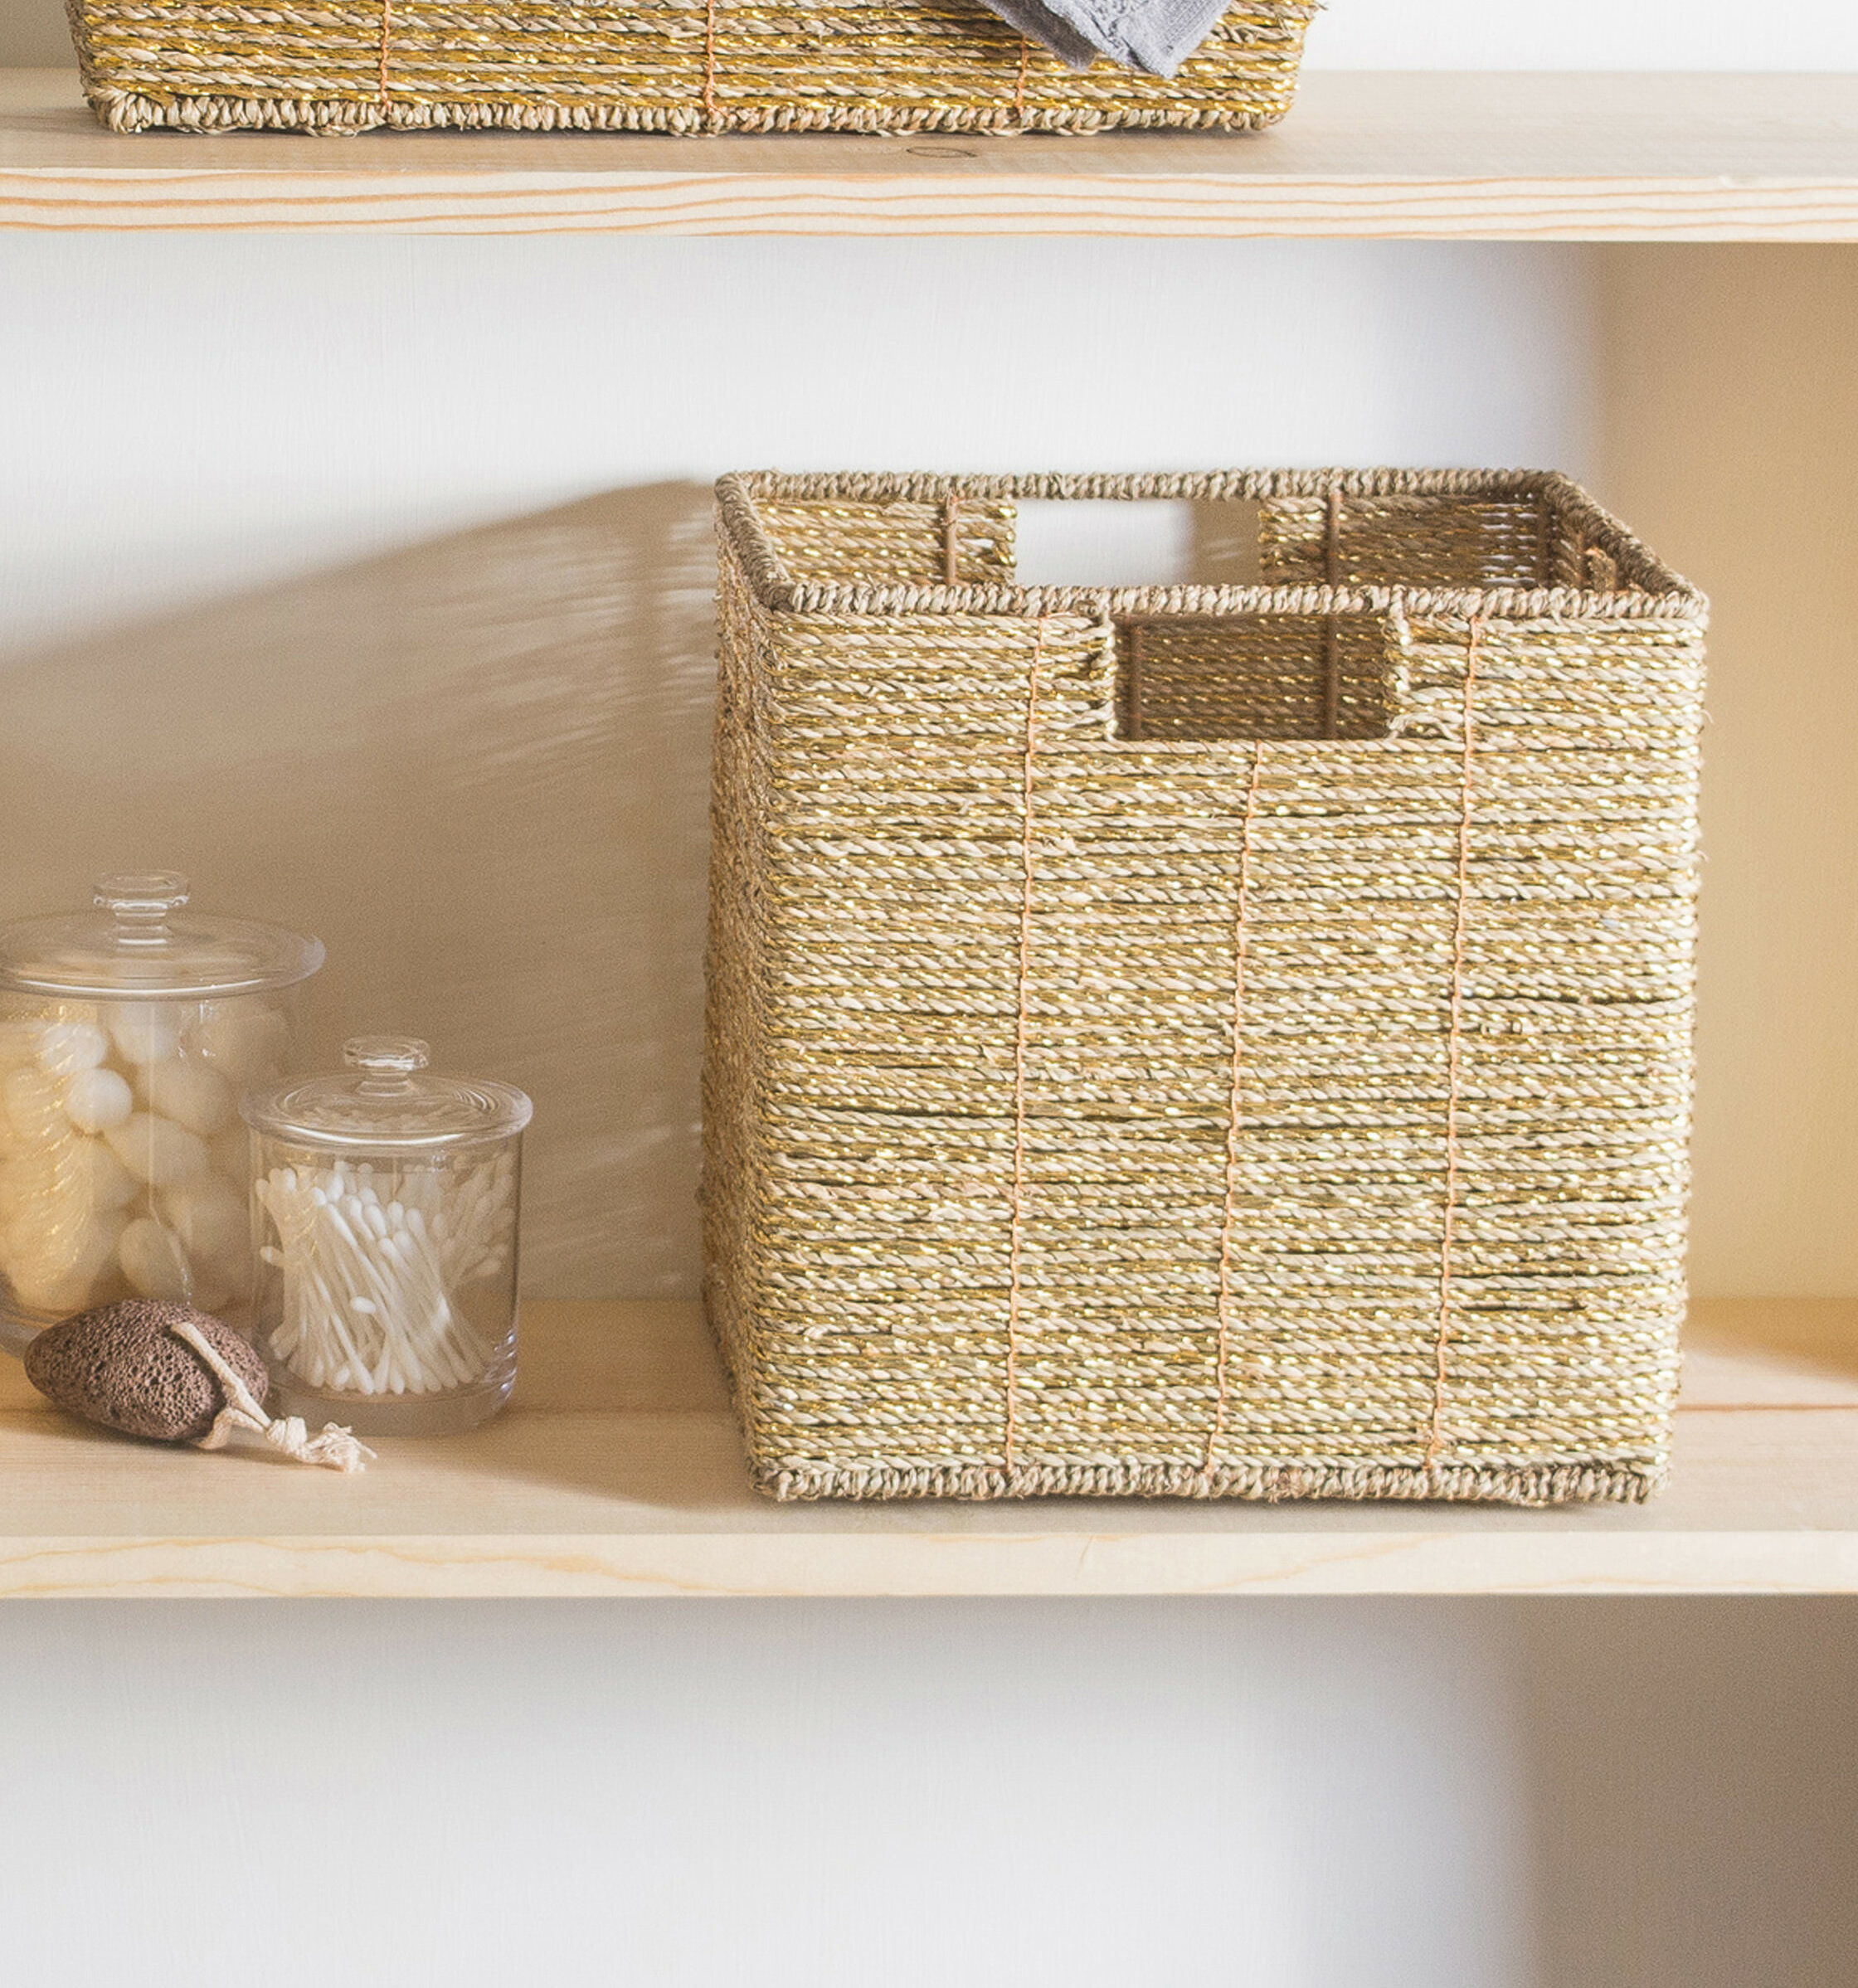 Highland Dunes Seagrass Wicker Basket & Reviews | Wayfair